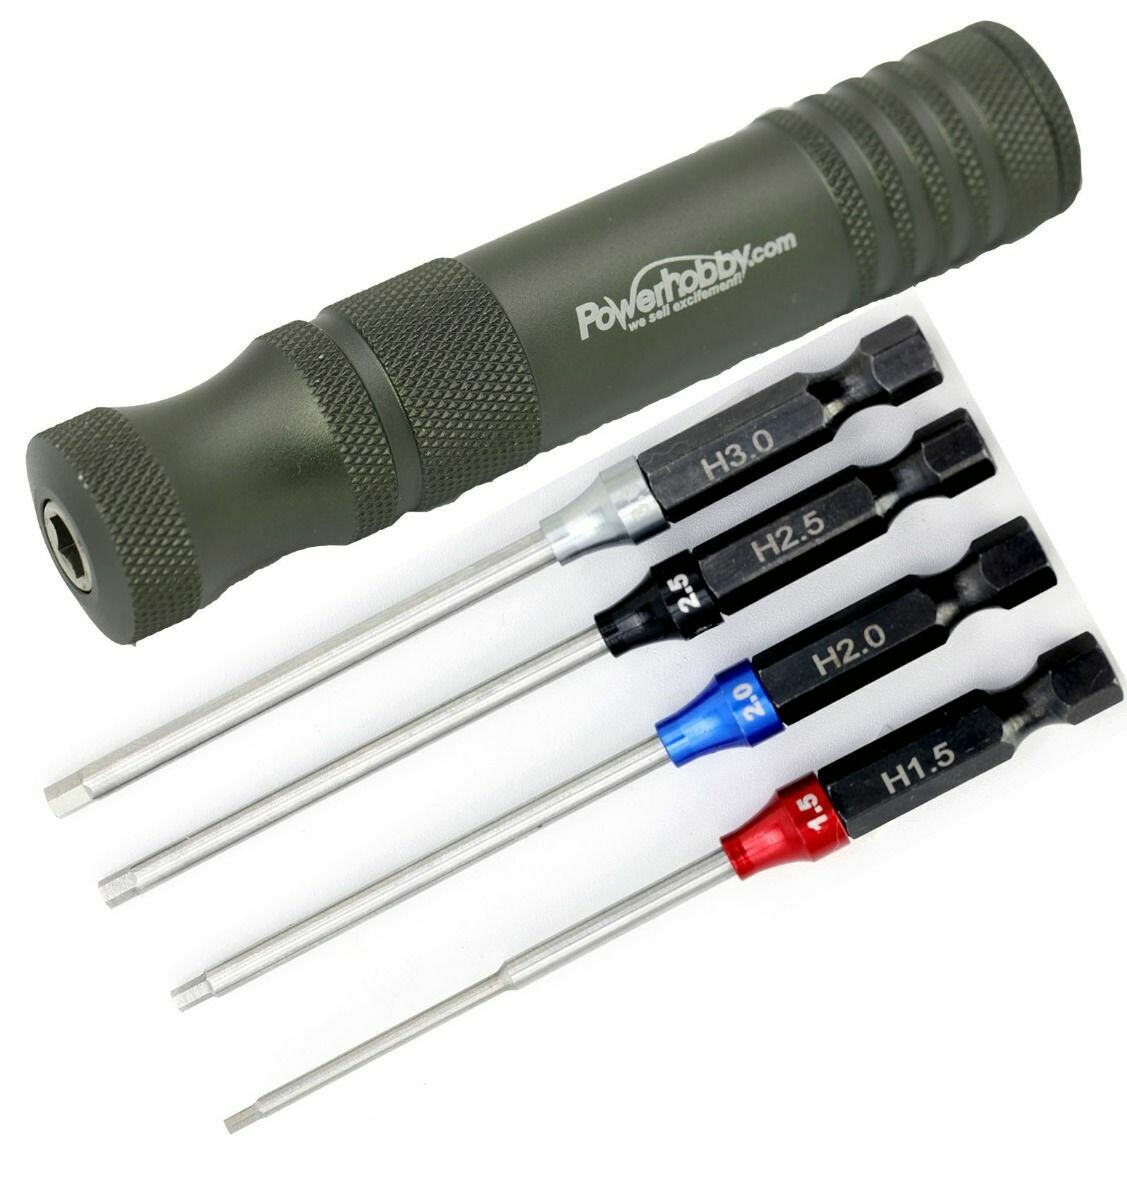 "Powerhobby Hex Tip Driver w/Handle 1/4"" Tool Set Metric 1.5, 2.0, 2.5, 3.0 mm PHT007"